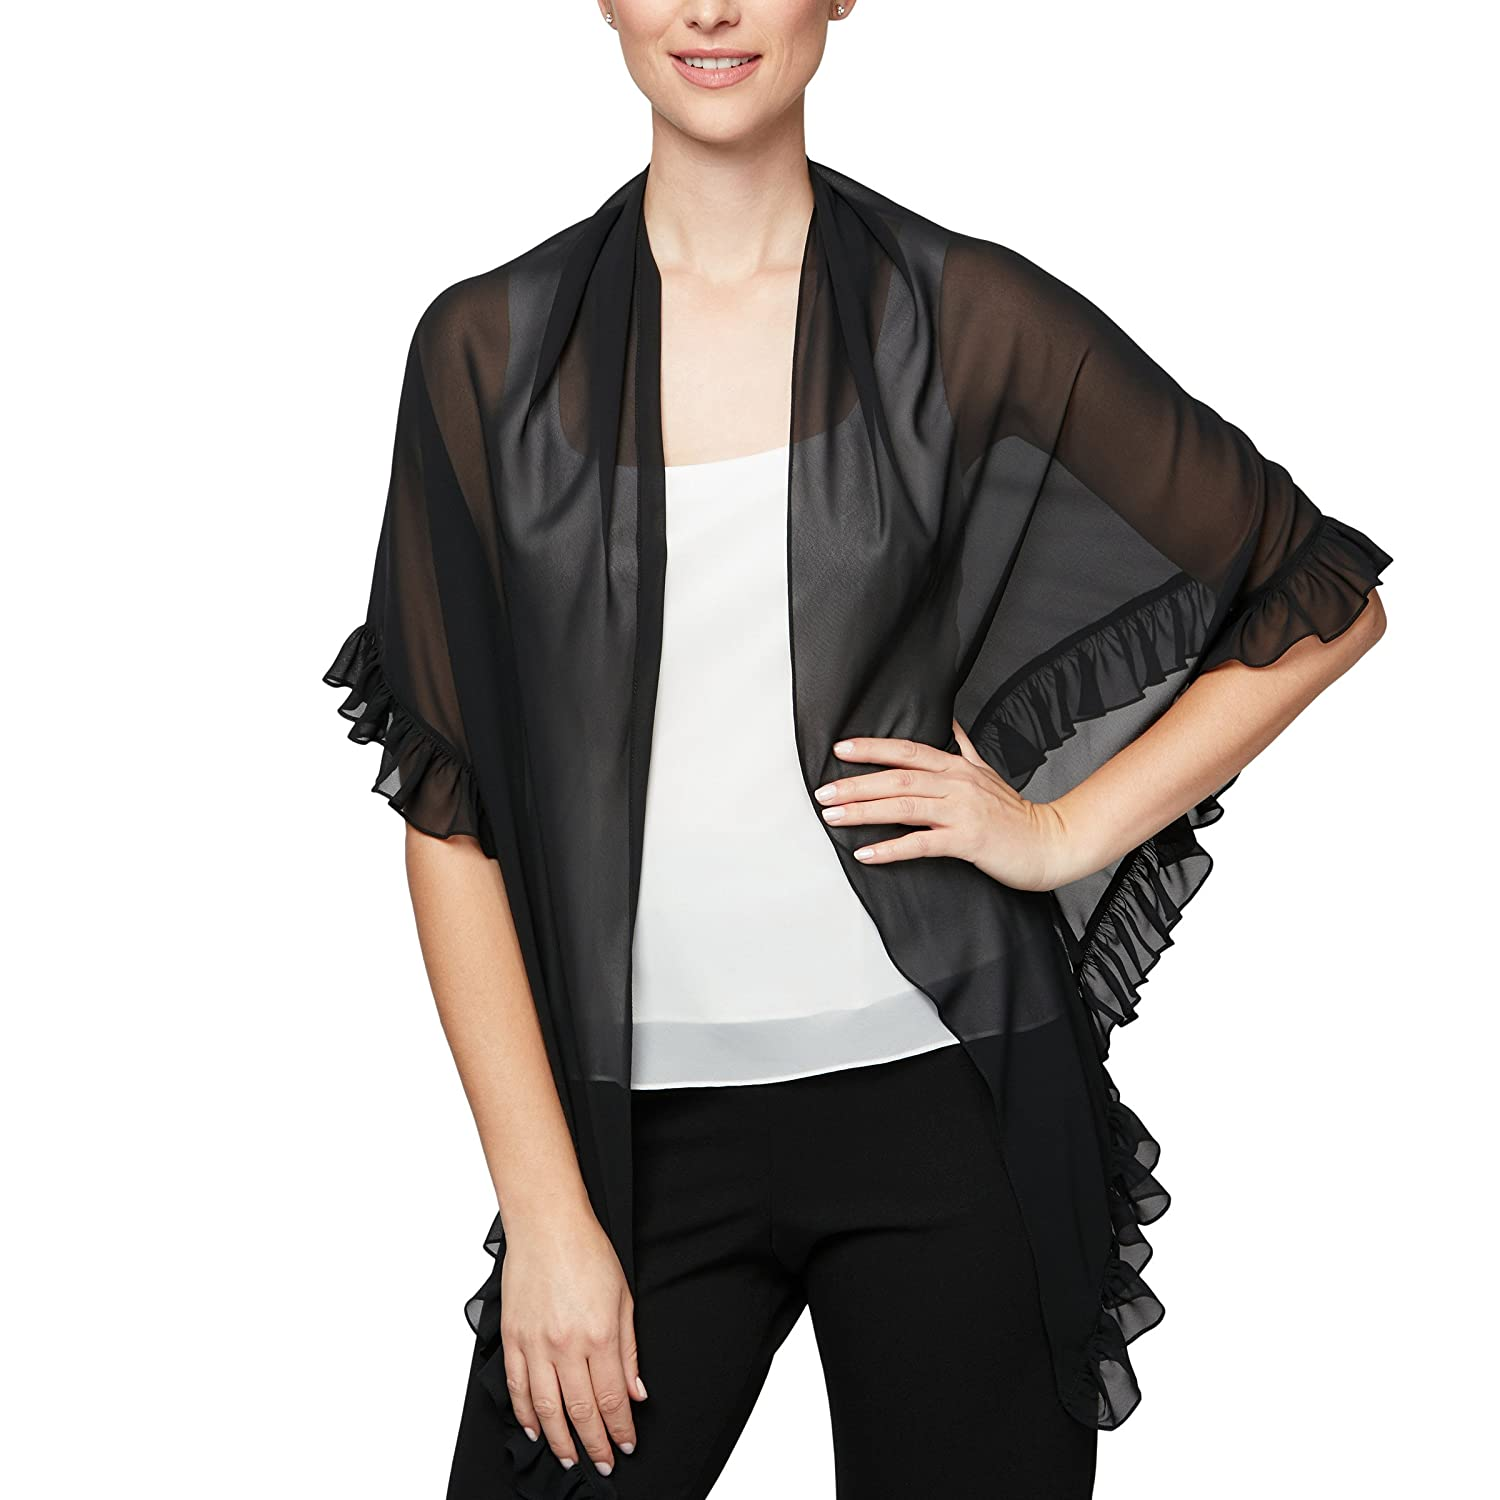 Black Ruffle Alex Evenings Womens 3 4 Sleeve Bolero Shrug Jacket Shawl Special Occasion Dress